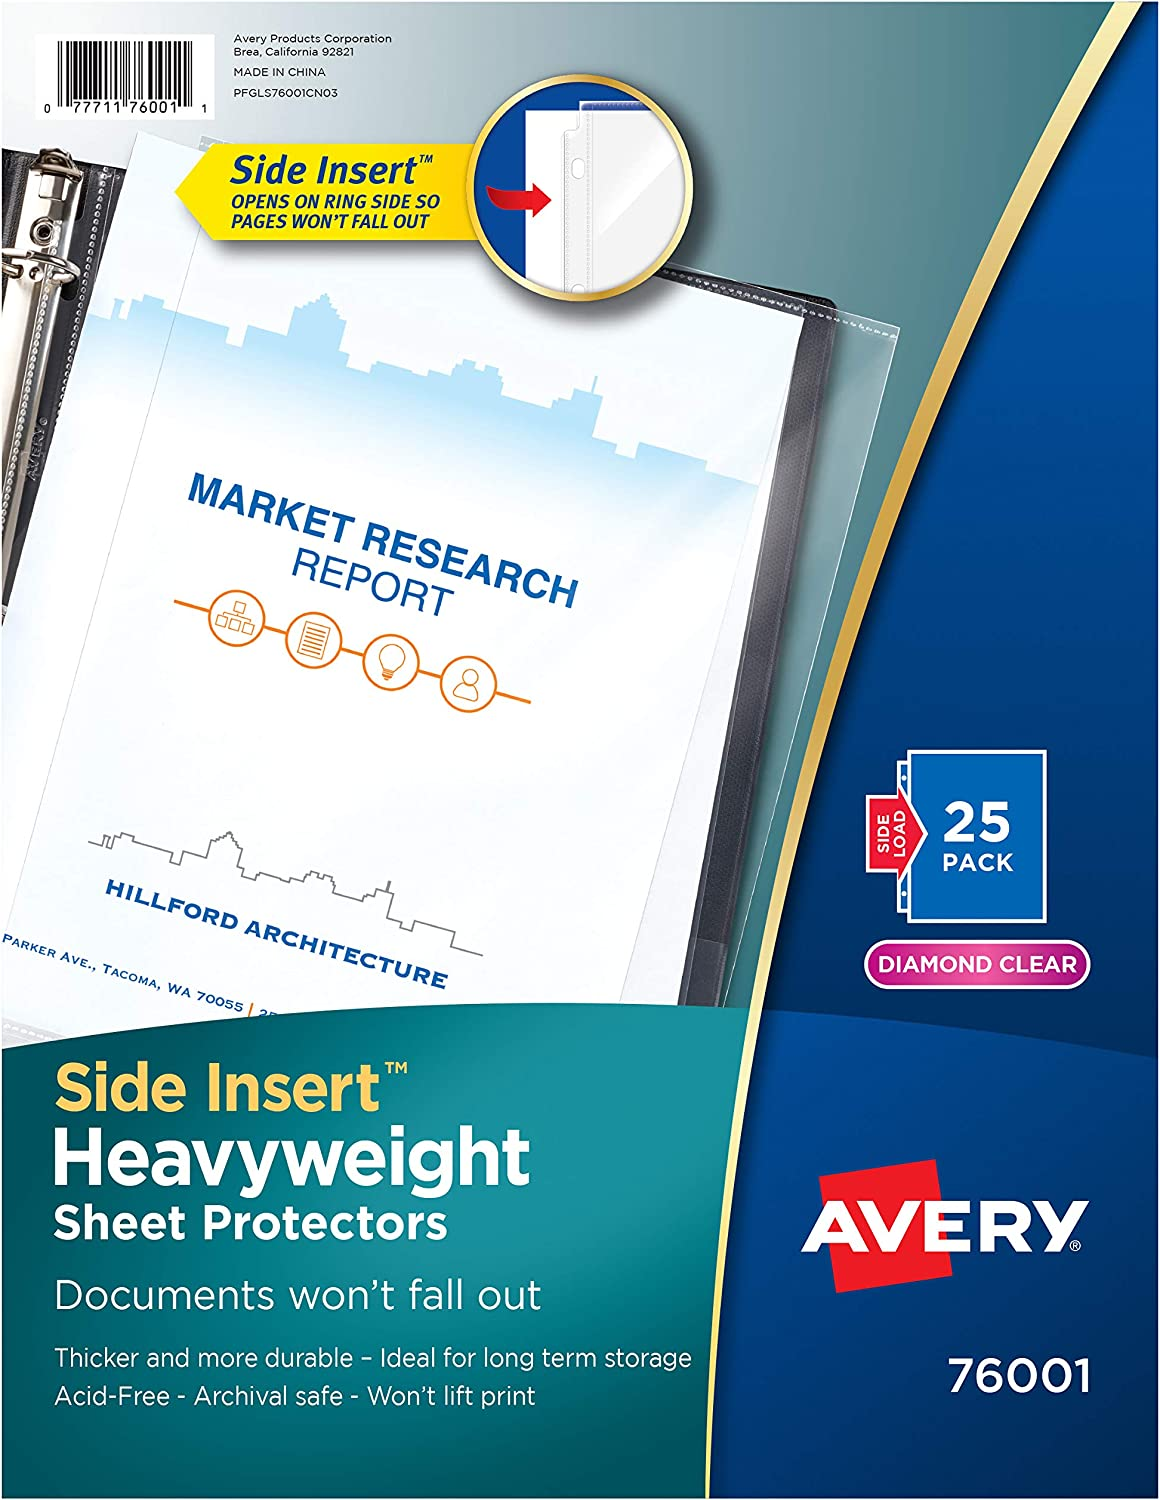 Avery 76001 Secure Side-Load Sheet Protectors, Heavy Gauge, Letter, Diamond Clear (Pack of 25) : Office Products